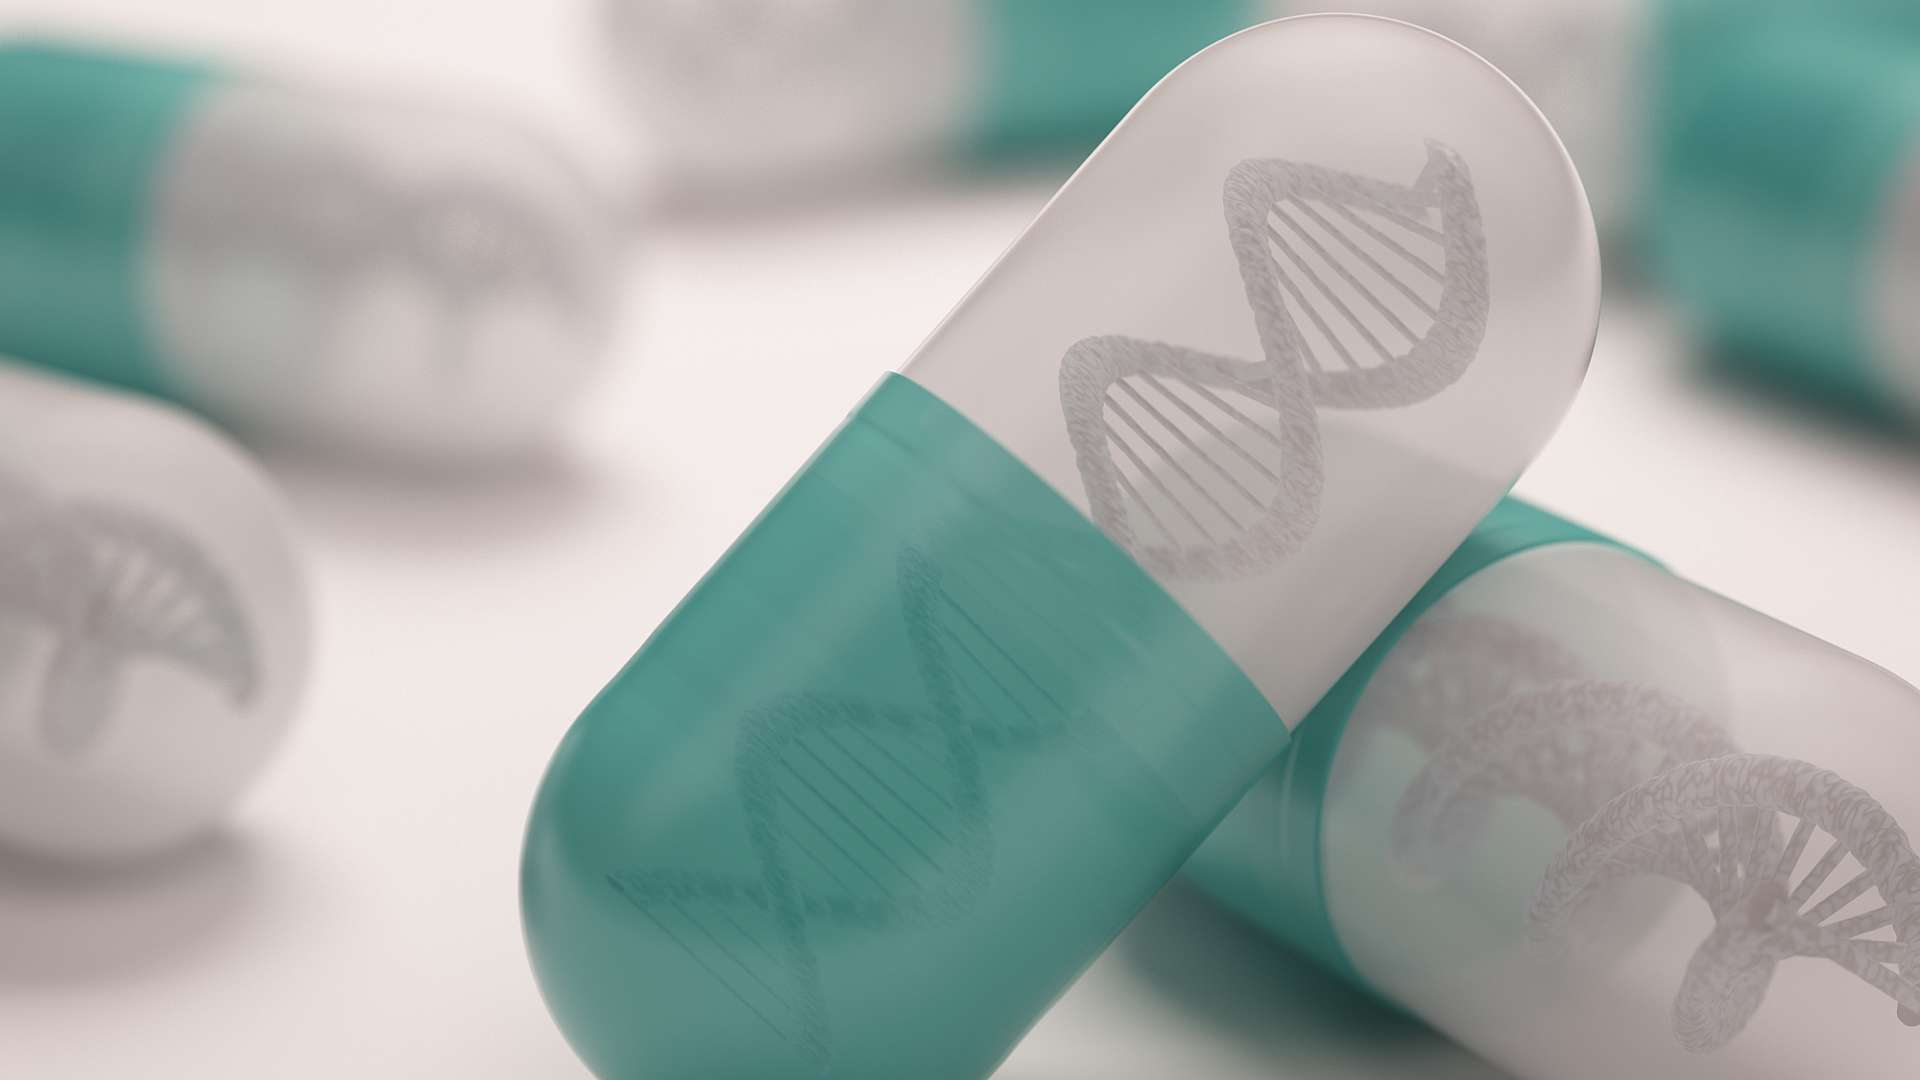 Precision medicine targets the cause of disease at a molecular level